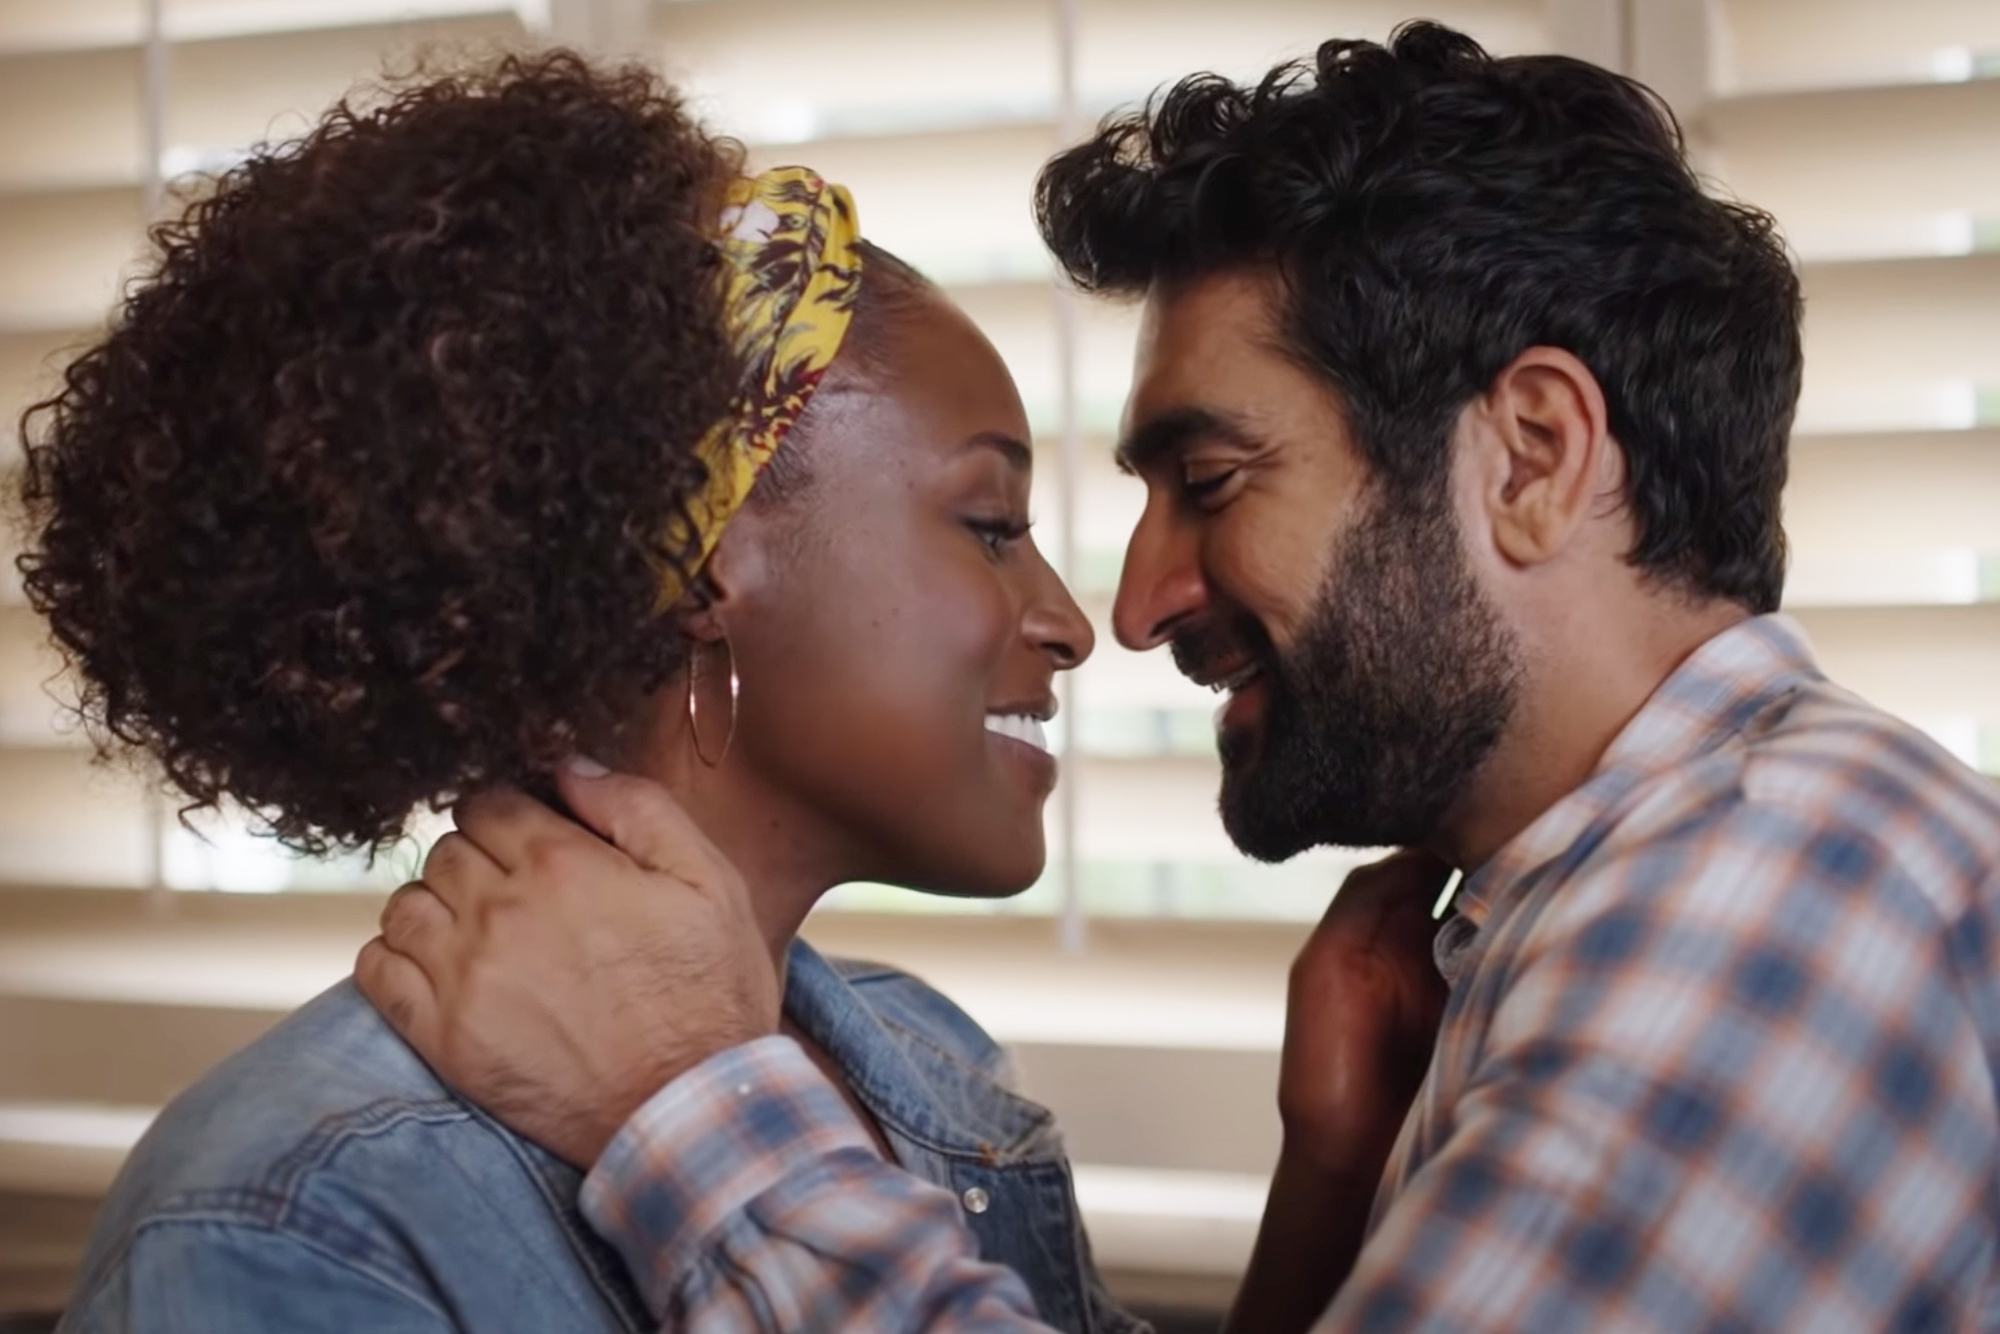 Issa Rae, Kumail Nanjiani Are on the Run in 'The Lovebirds' Trailer